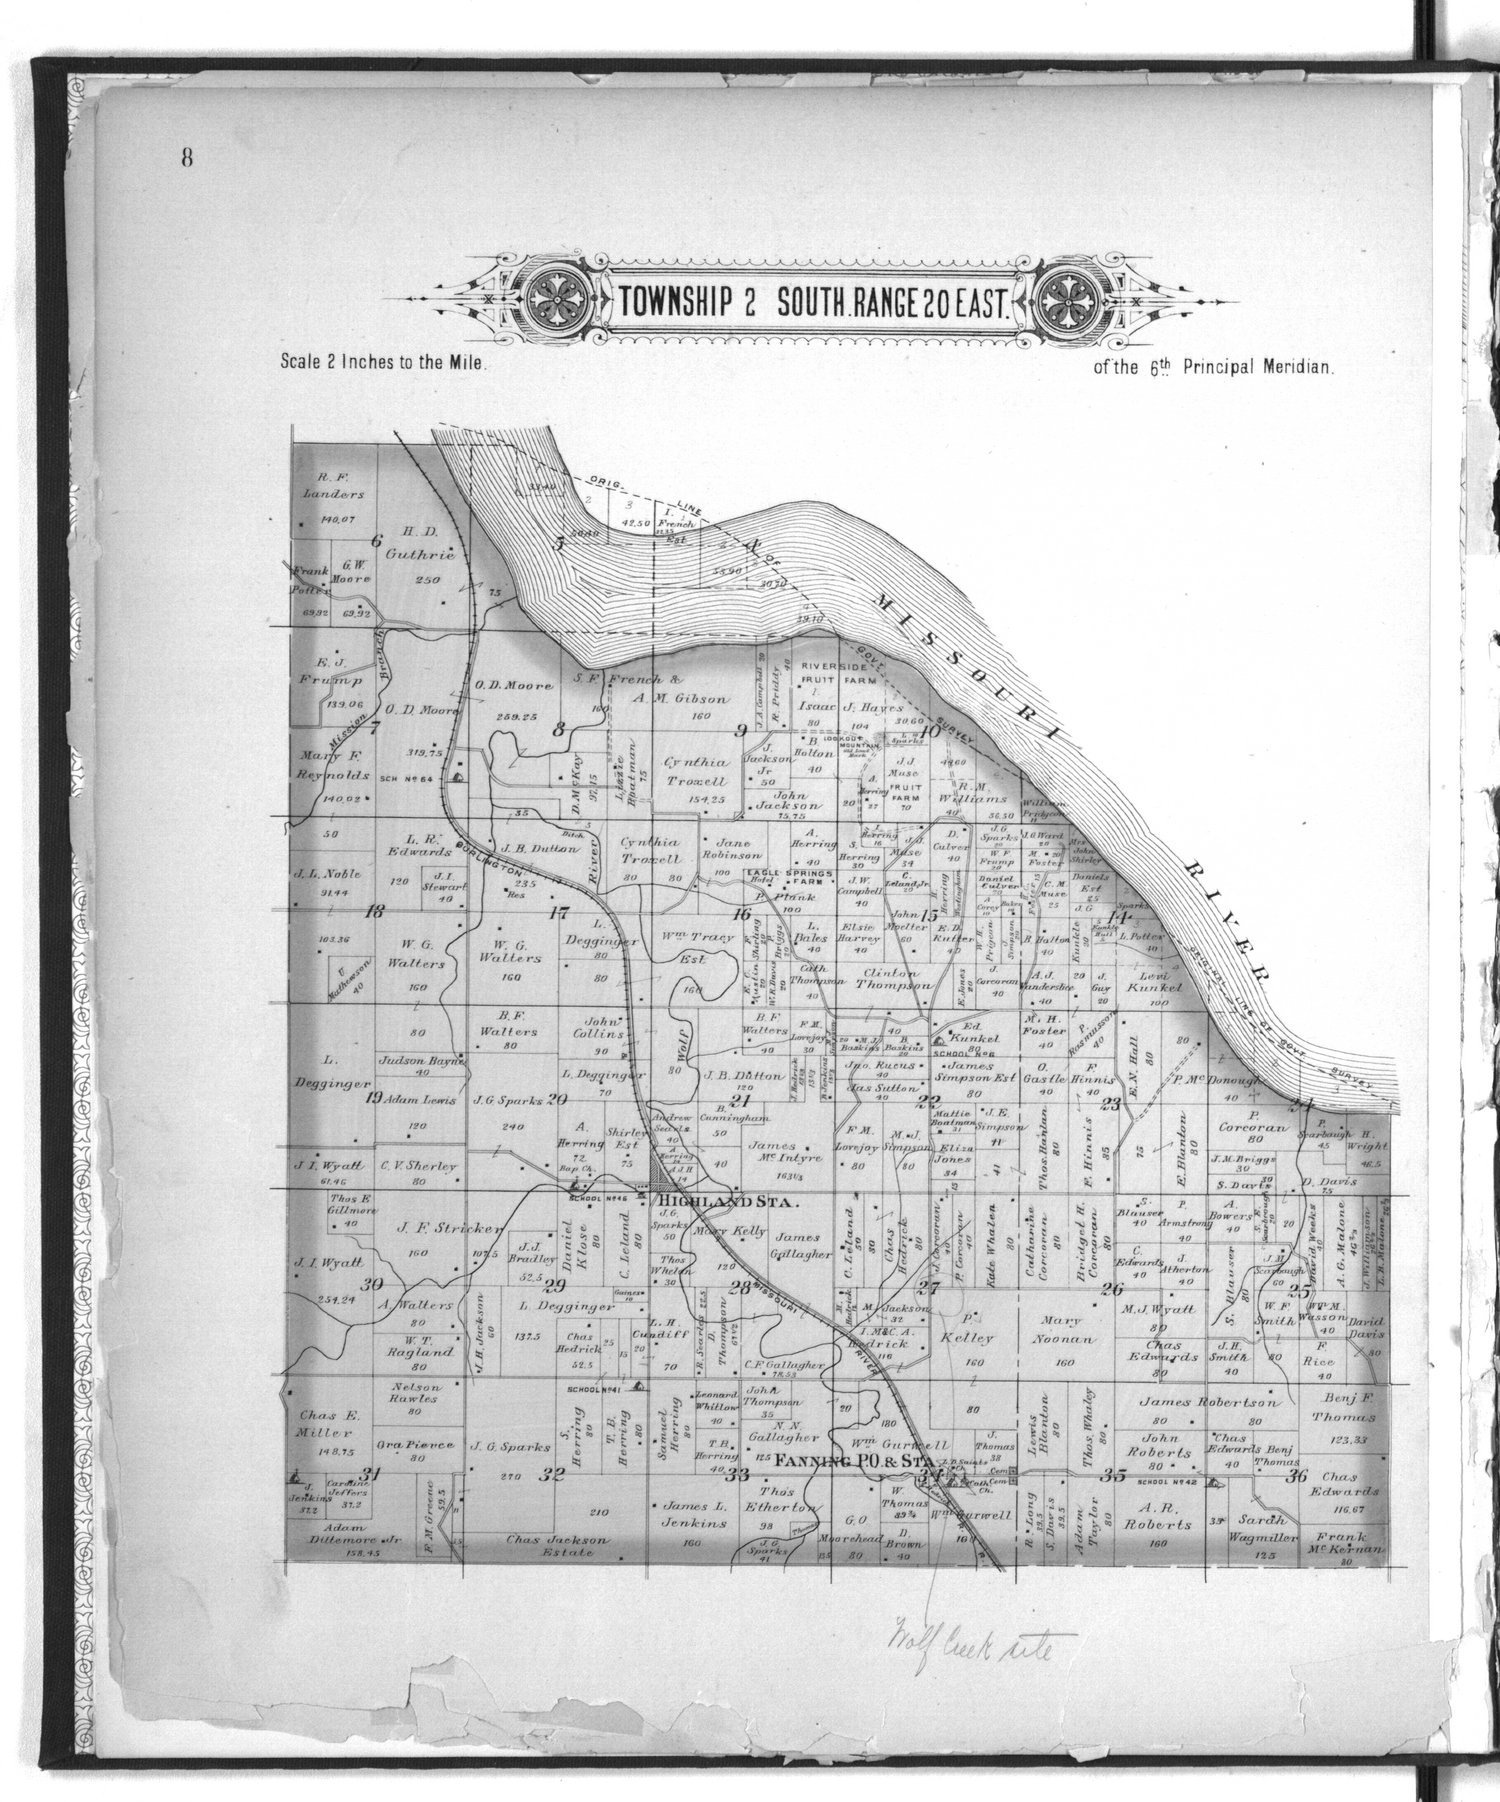 Plat book of Doniphan County, Kansas - 8